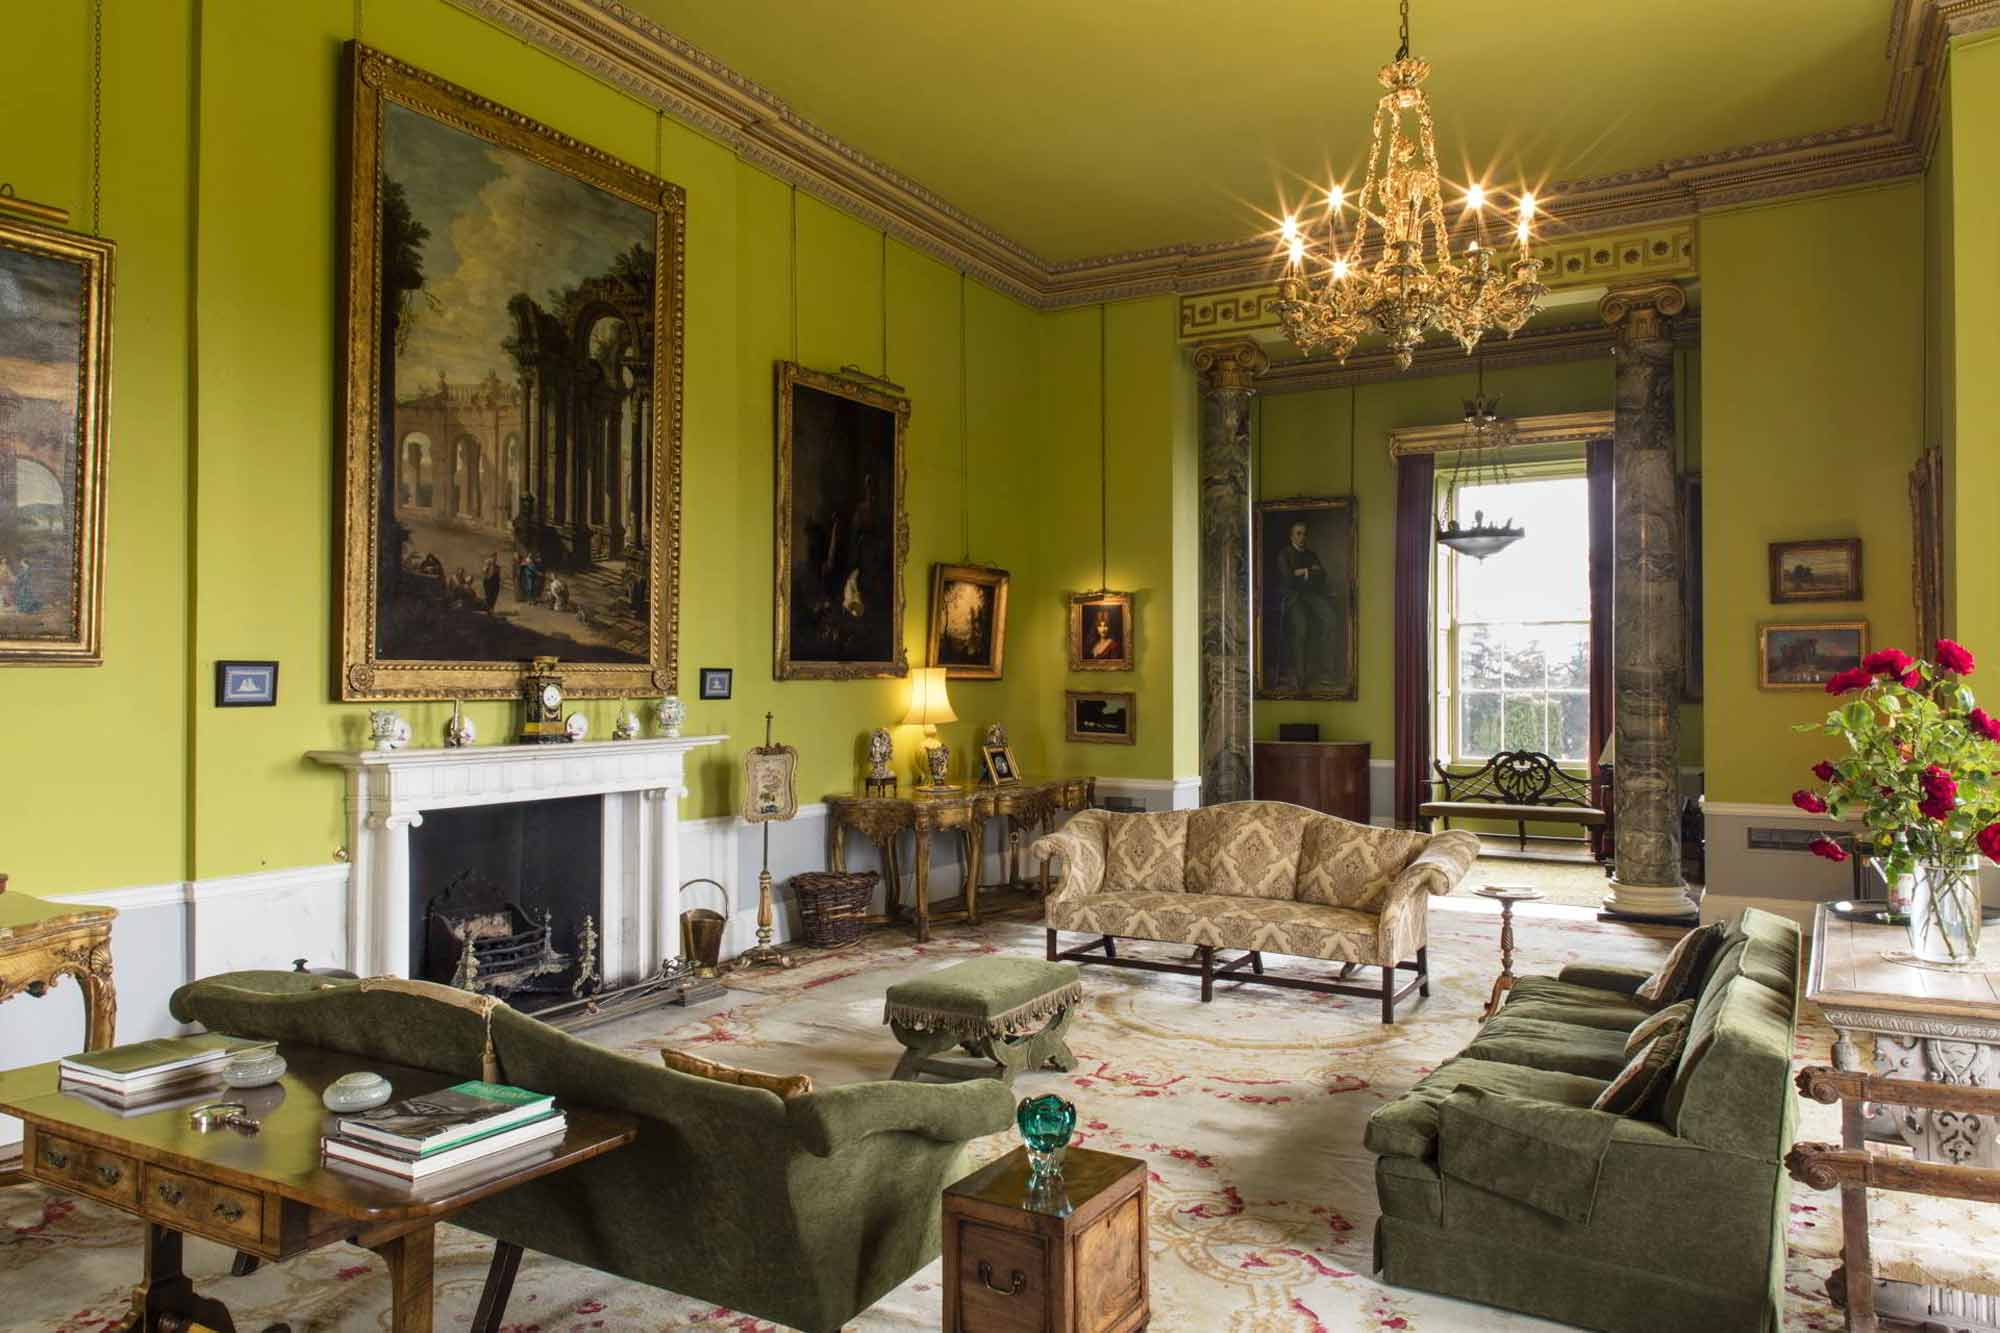 The drawing room with Irish yew settee in front of window.